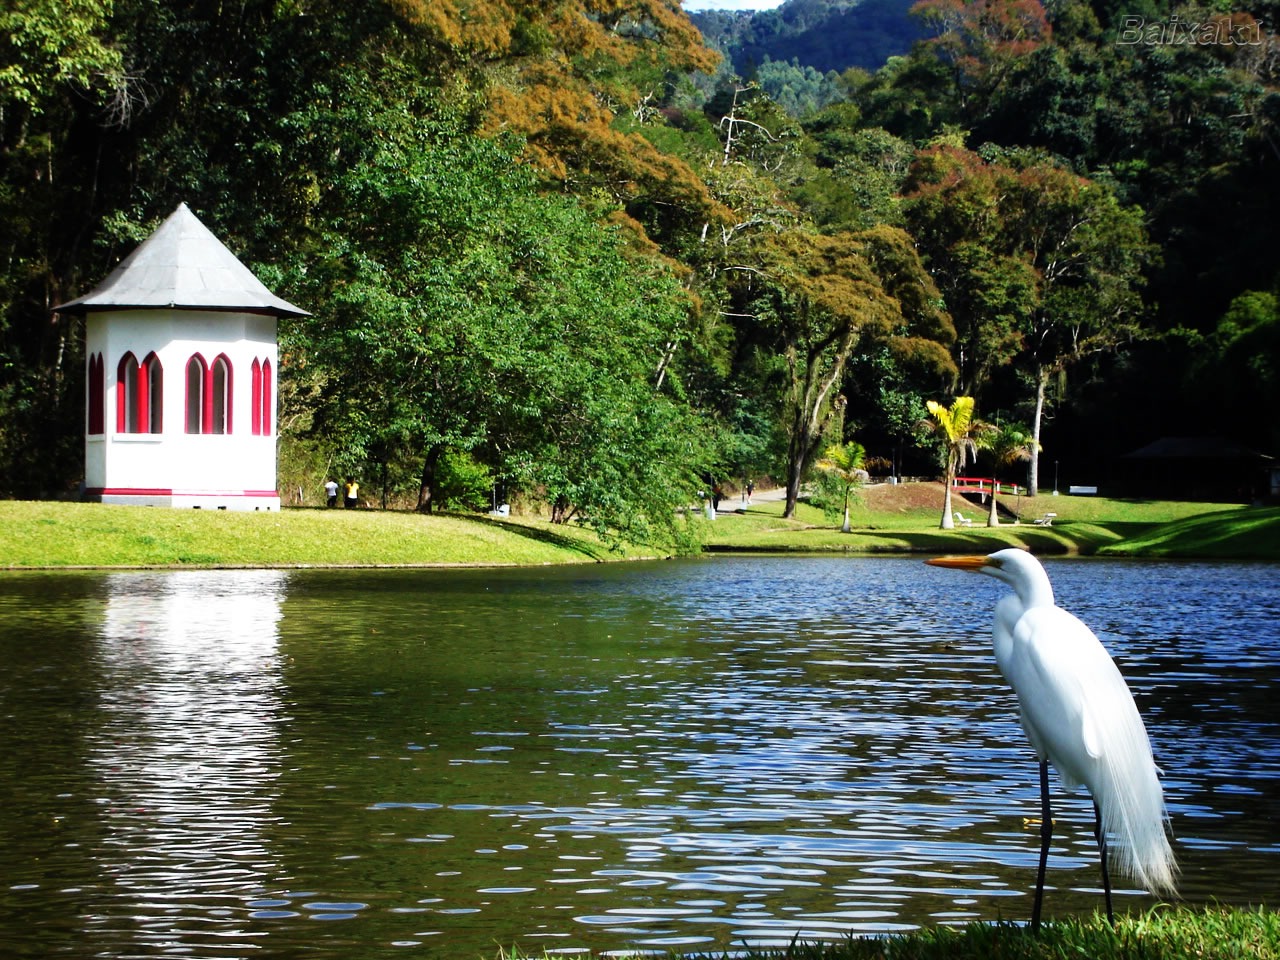 Country Club de Nova Friburgo